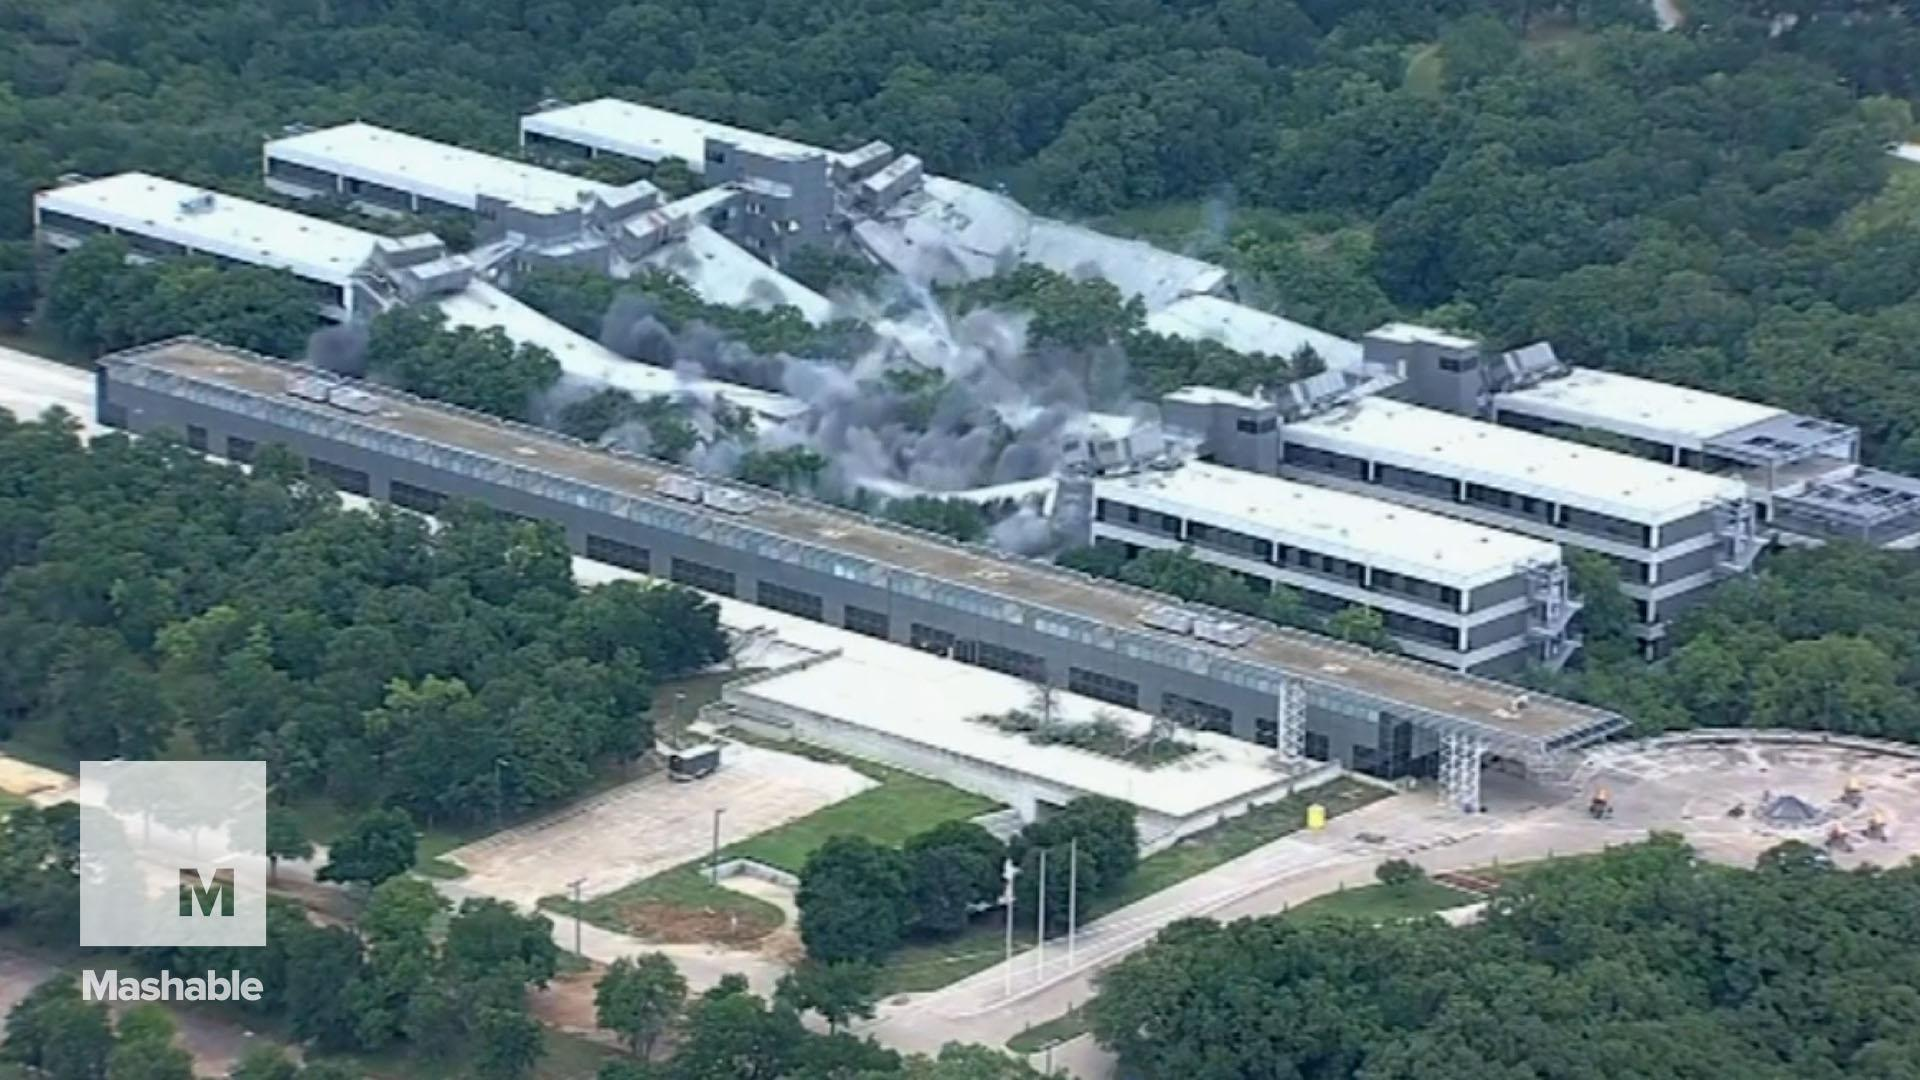 Implosion takes down American Airlines' headquarters in mesmerizing footage